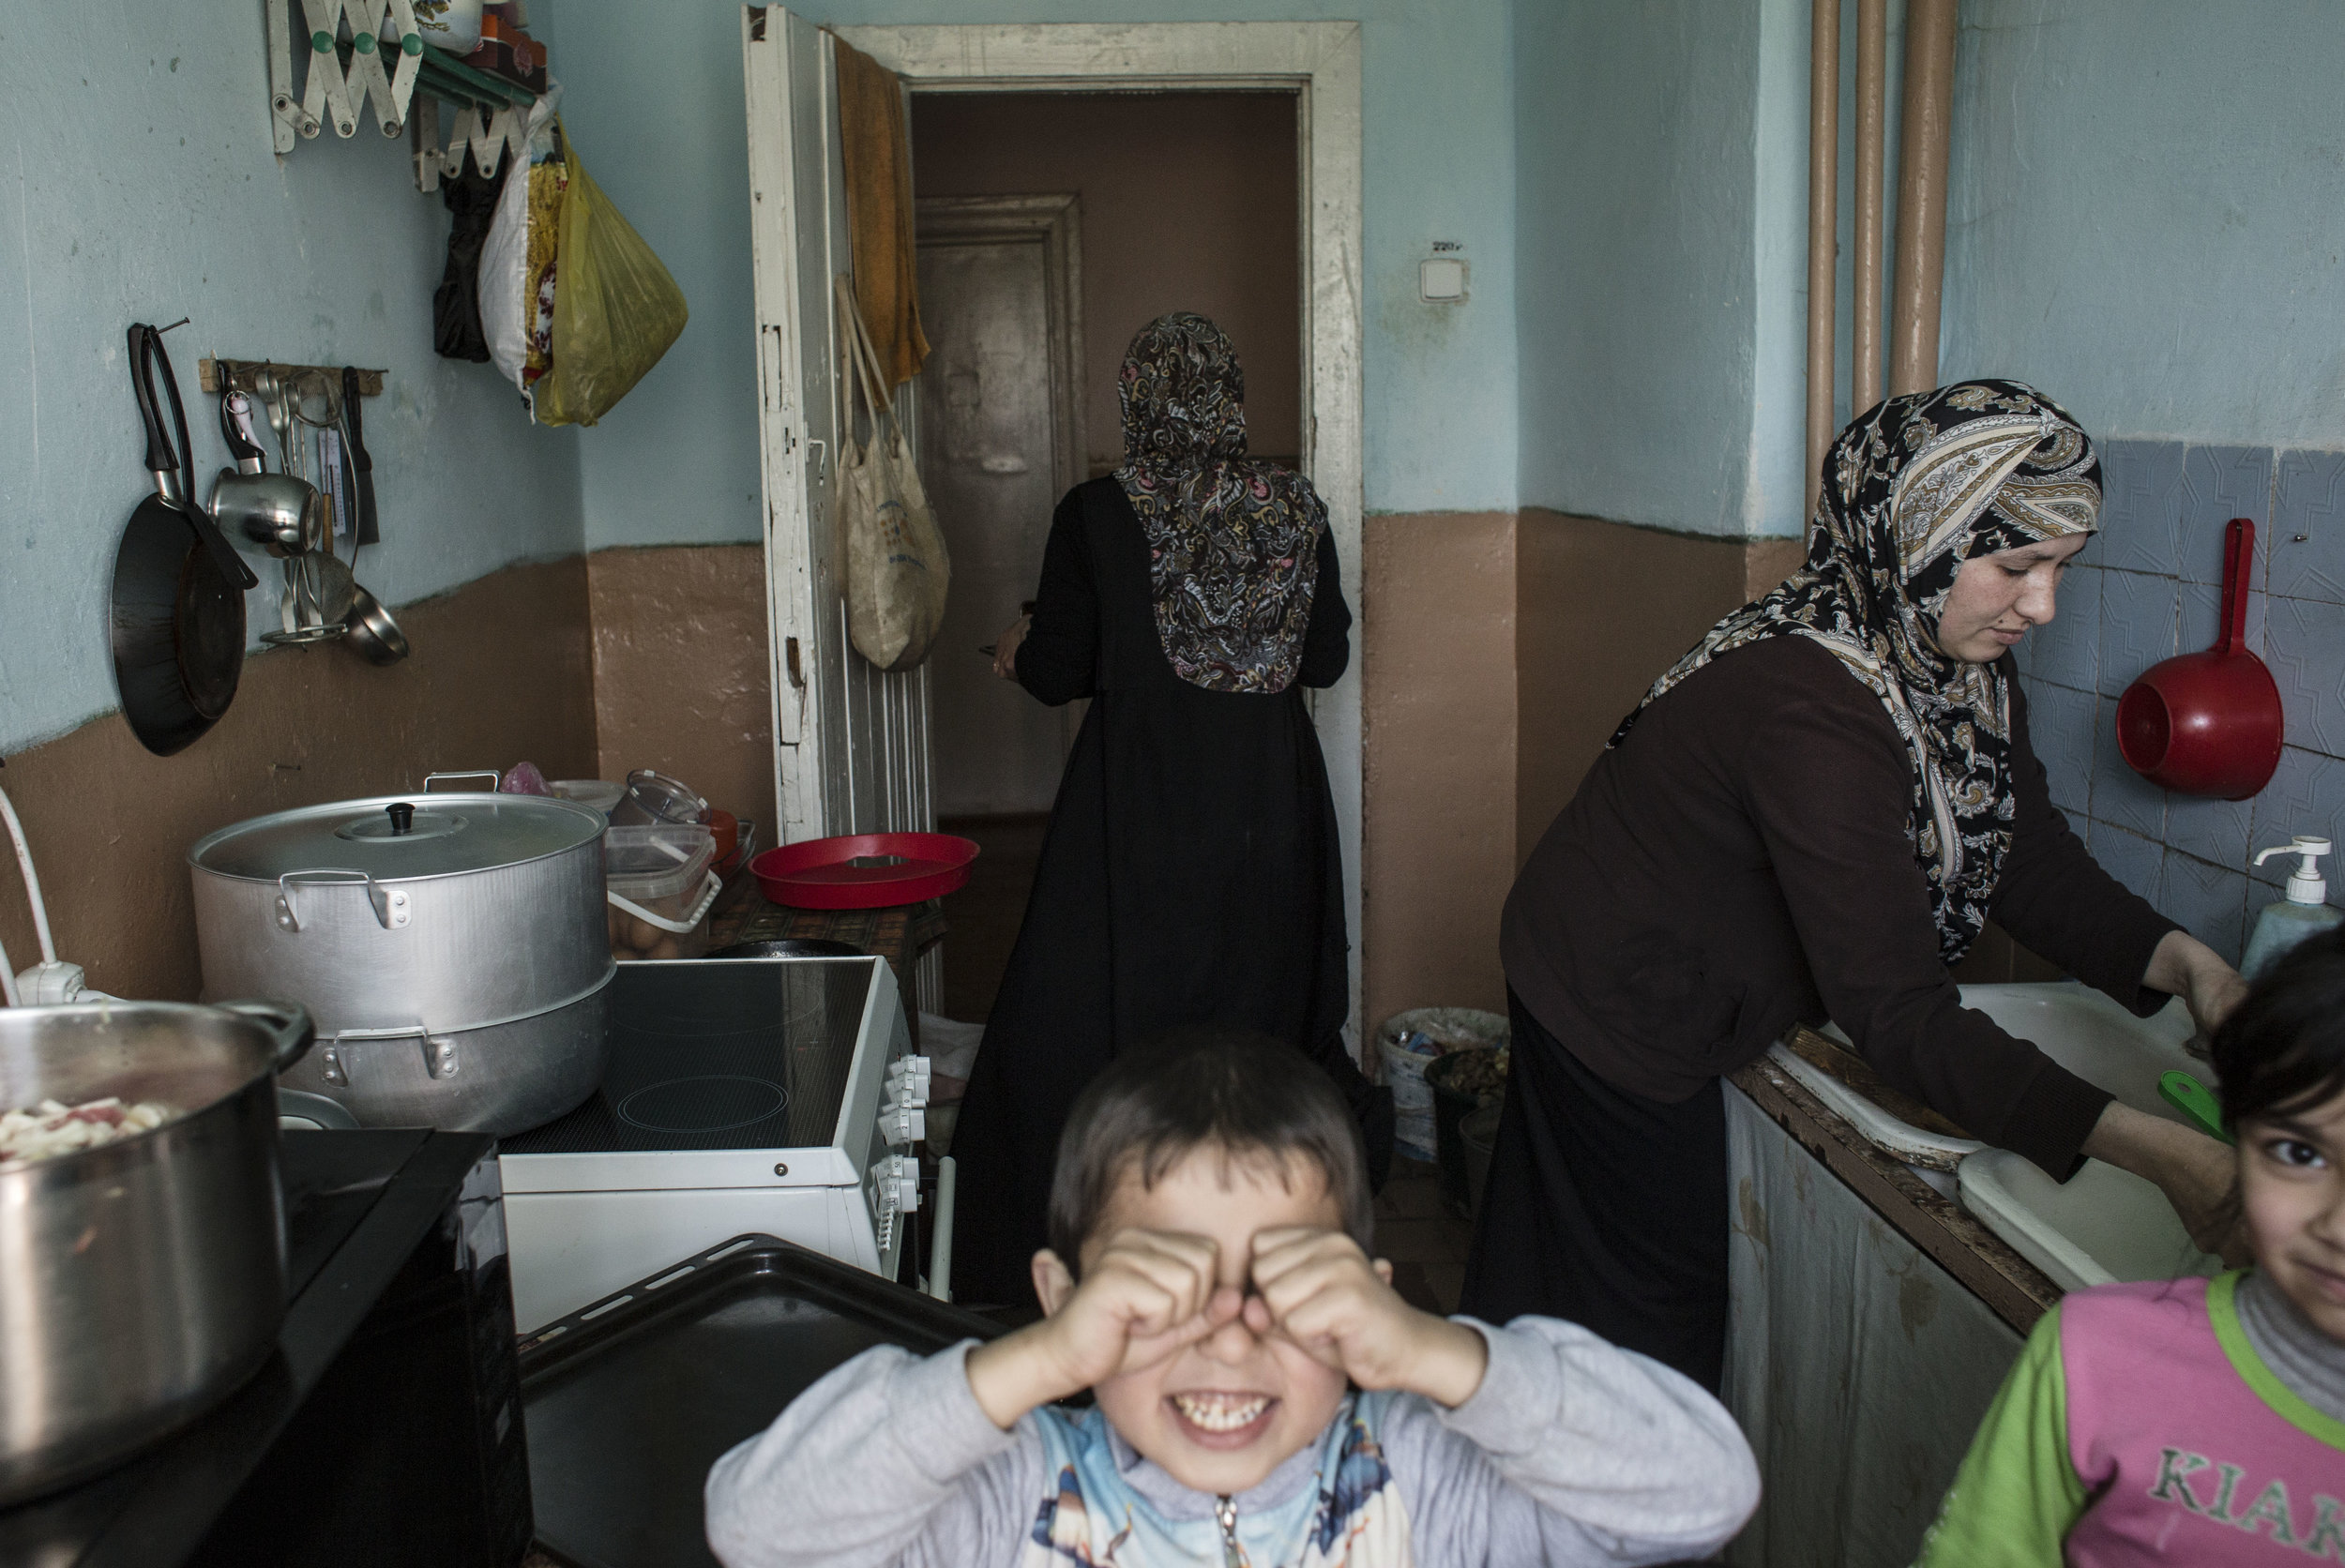 Homeland in Exile - By Anastasia VlasovaCrimean Tatars are an ethnic minority that were forced to leave Crimea after the Russian annexation in 2014. They resettled in Lviv, Western Ukraine, a predominantly Christian area. Here they are able to build community and integrate peacefully.